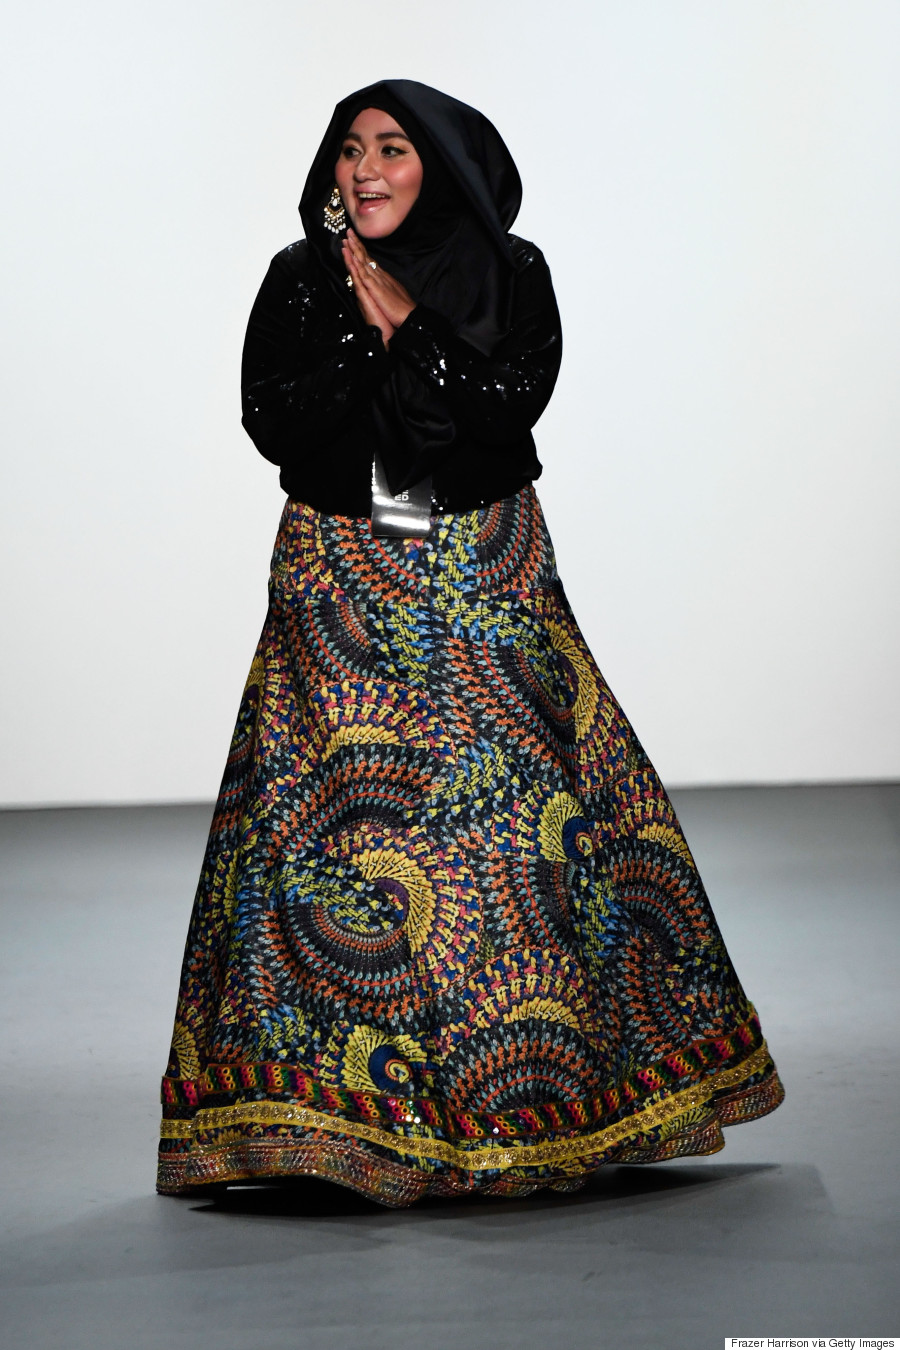 Anniesa hasibuan is the first designer to showcase hijab for Nyu tisch fashion design